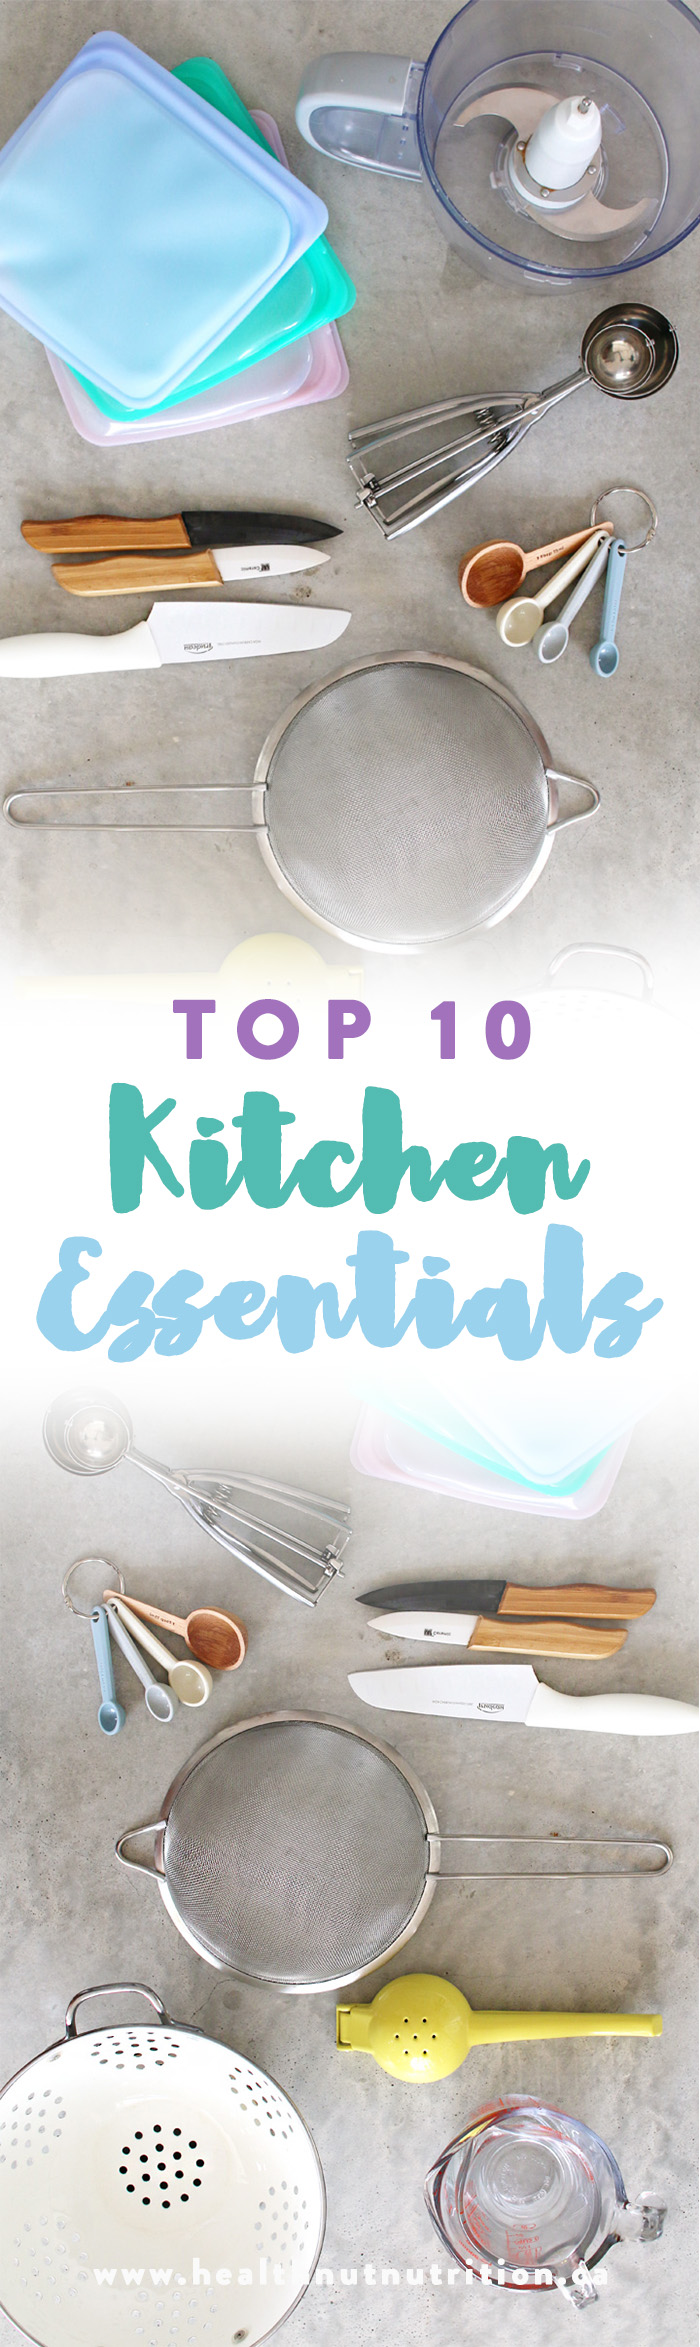 My top 10 kitchen essentials that I can't live without and think are a must in the kitchen.These little gadgets can totally upgrade your kitchen experience!